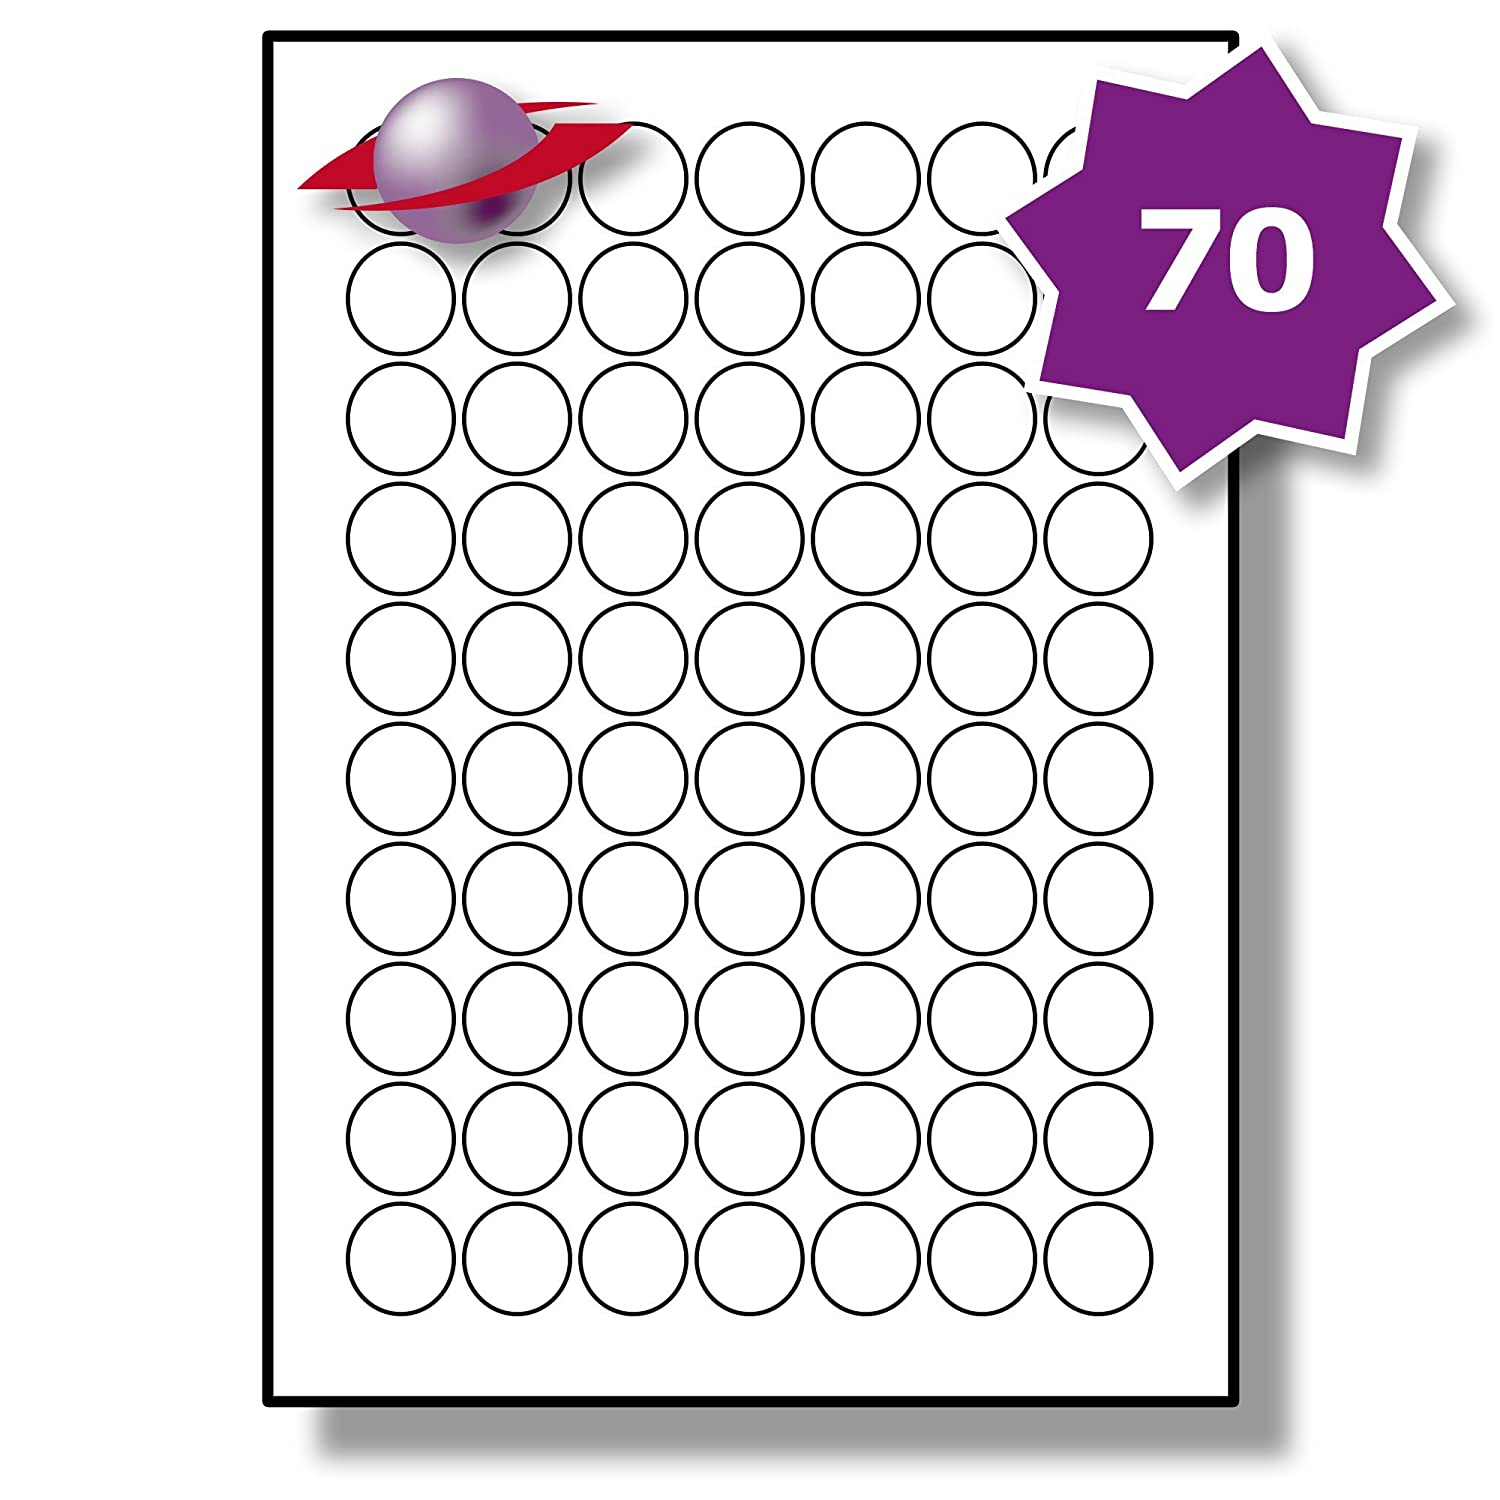 picture relating to Circle Printable Stickers called 70 For each Site/Sheet, 5 Sheets (350 Spherical Sticky Labels), LabelPlanet® White Blank Matt Self-Adhesive A4 Round Circle Charge Pricing Stickers,